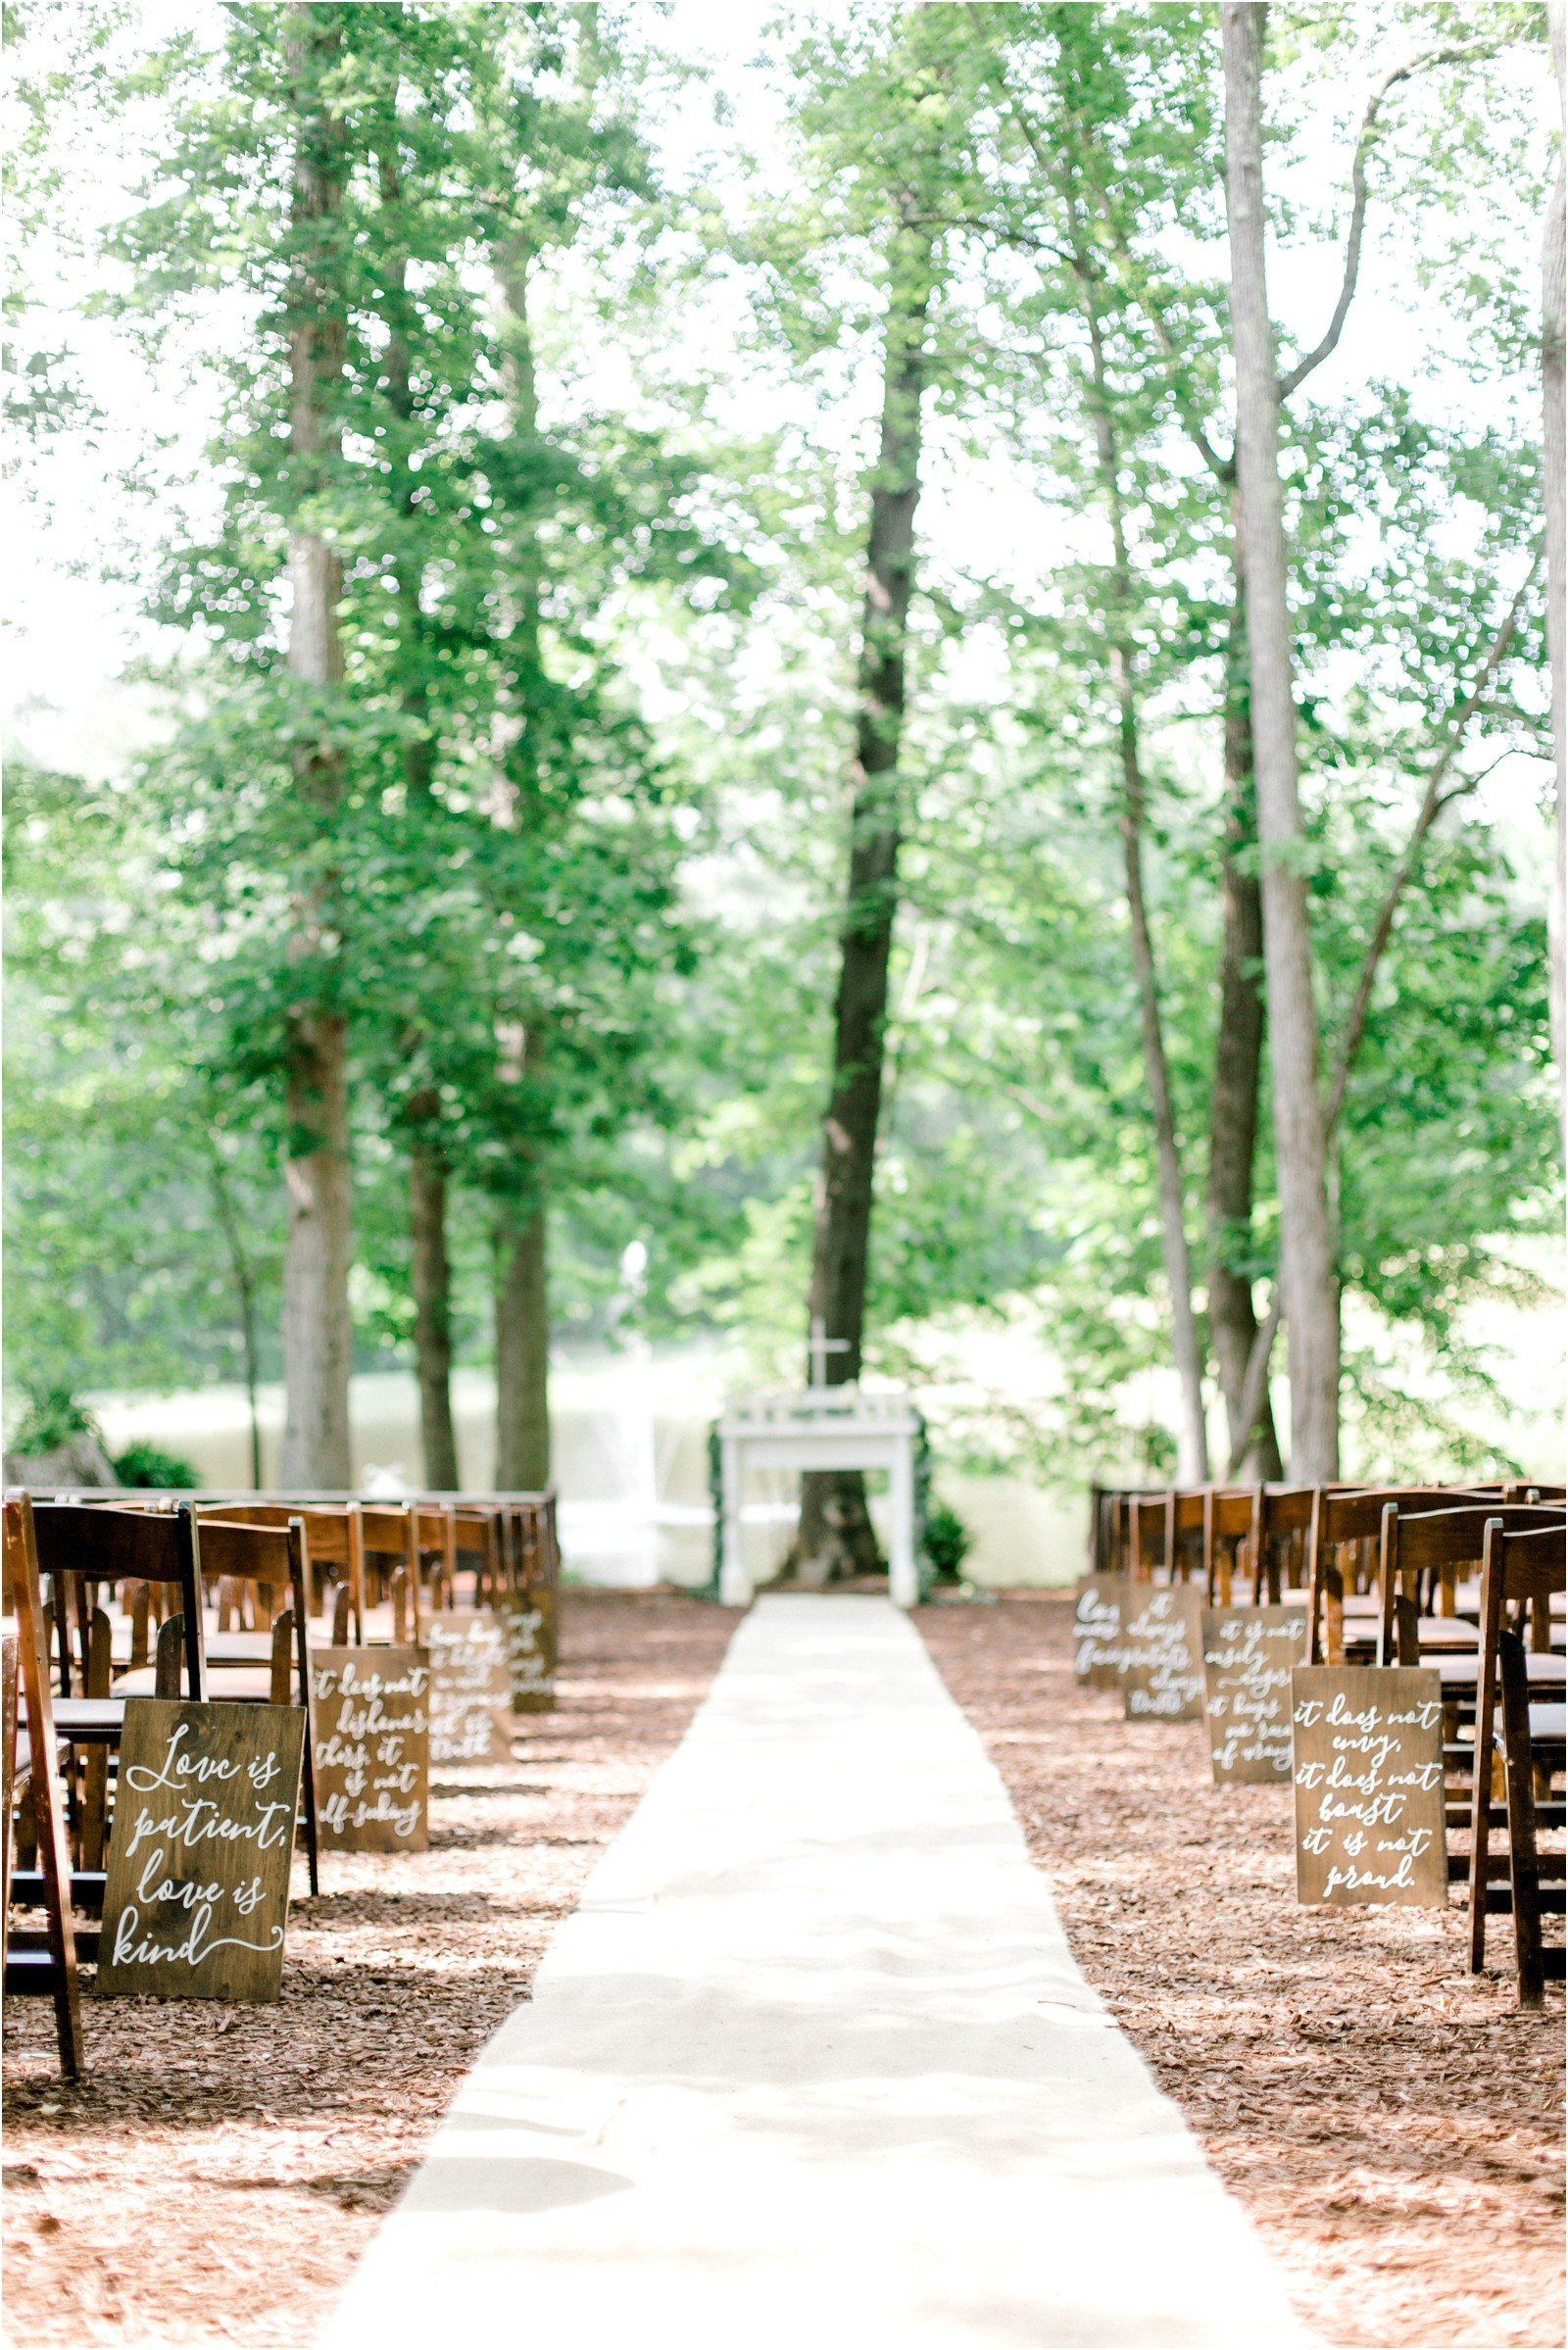 Chapel in the Woods Rustic Country Vintage Wedding Raleigh NC Plume Events Andrew & Tianna Photography-6